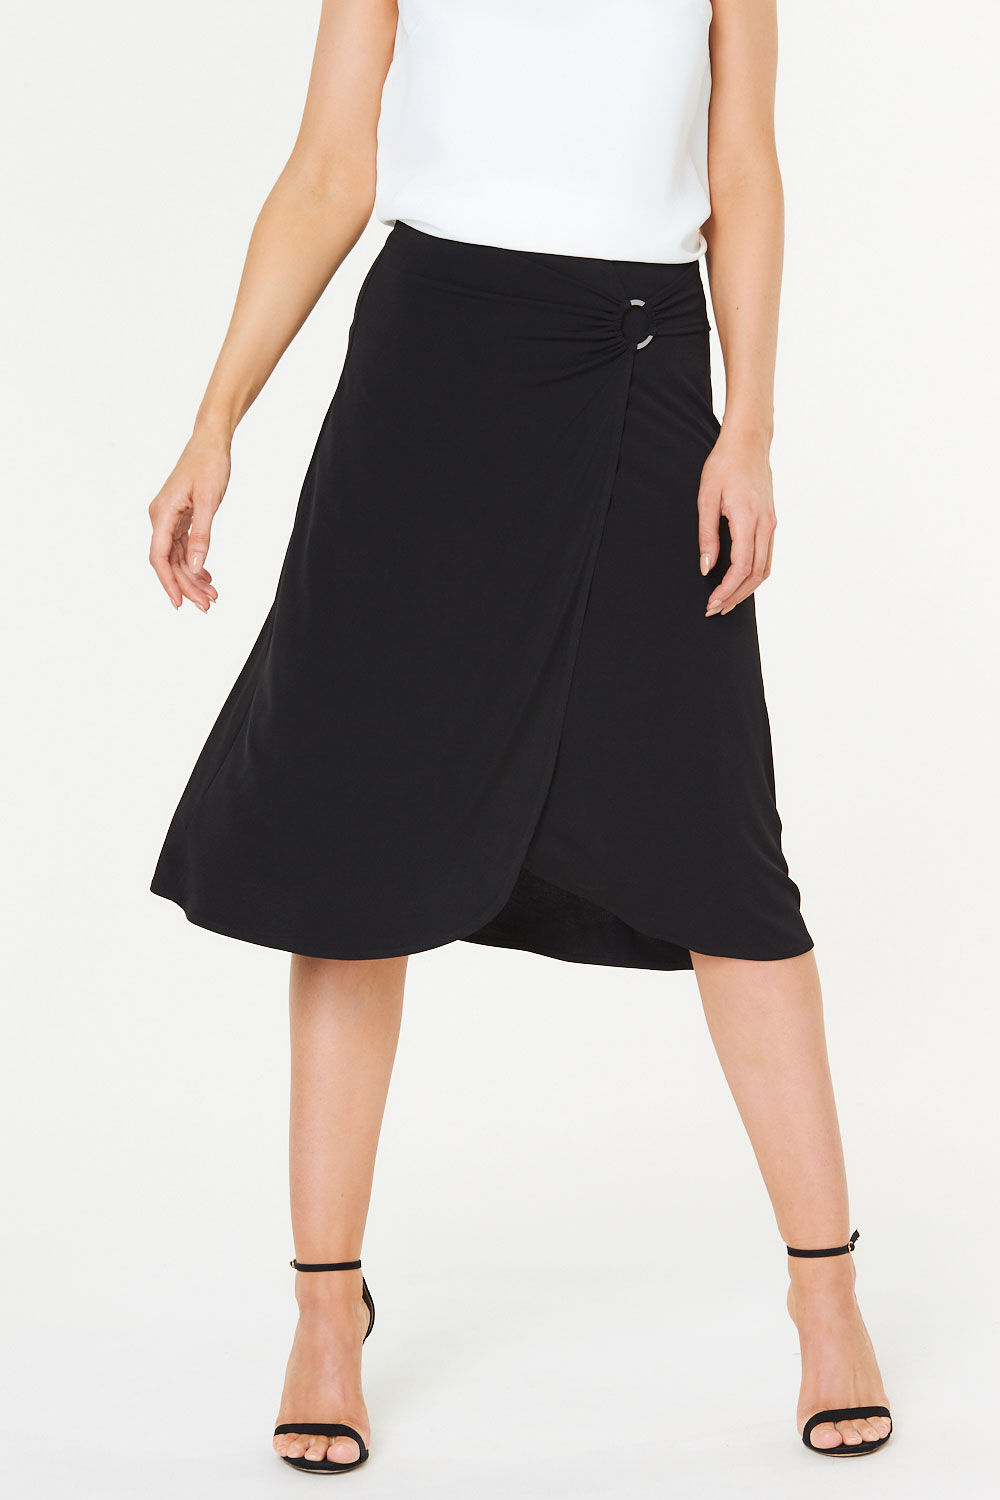 Trend Mark I.n Clothing, Shoes & Accessories Studio Womens Skirt Size Xl Straight Gray Pencil Attractive Designs;